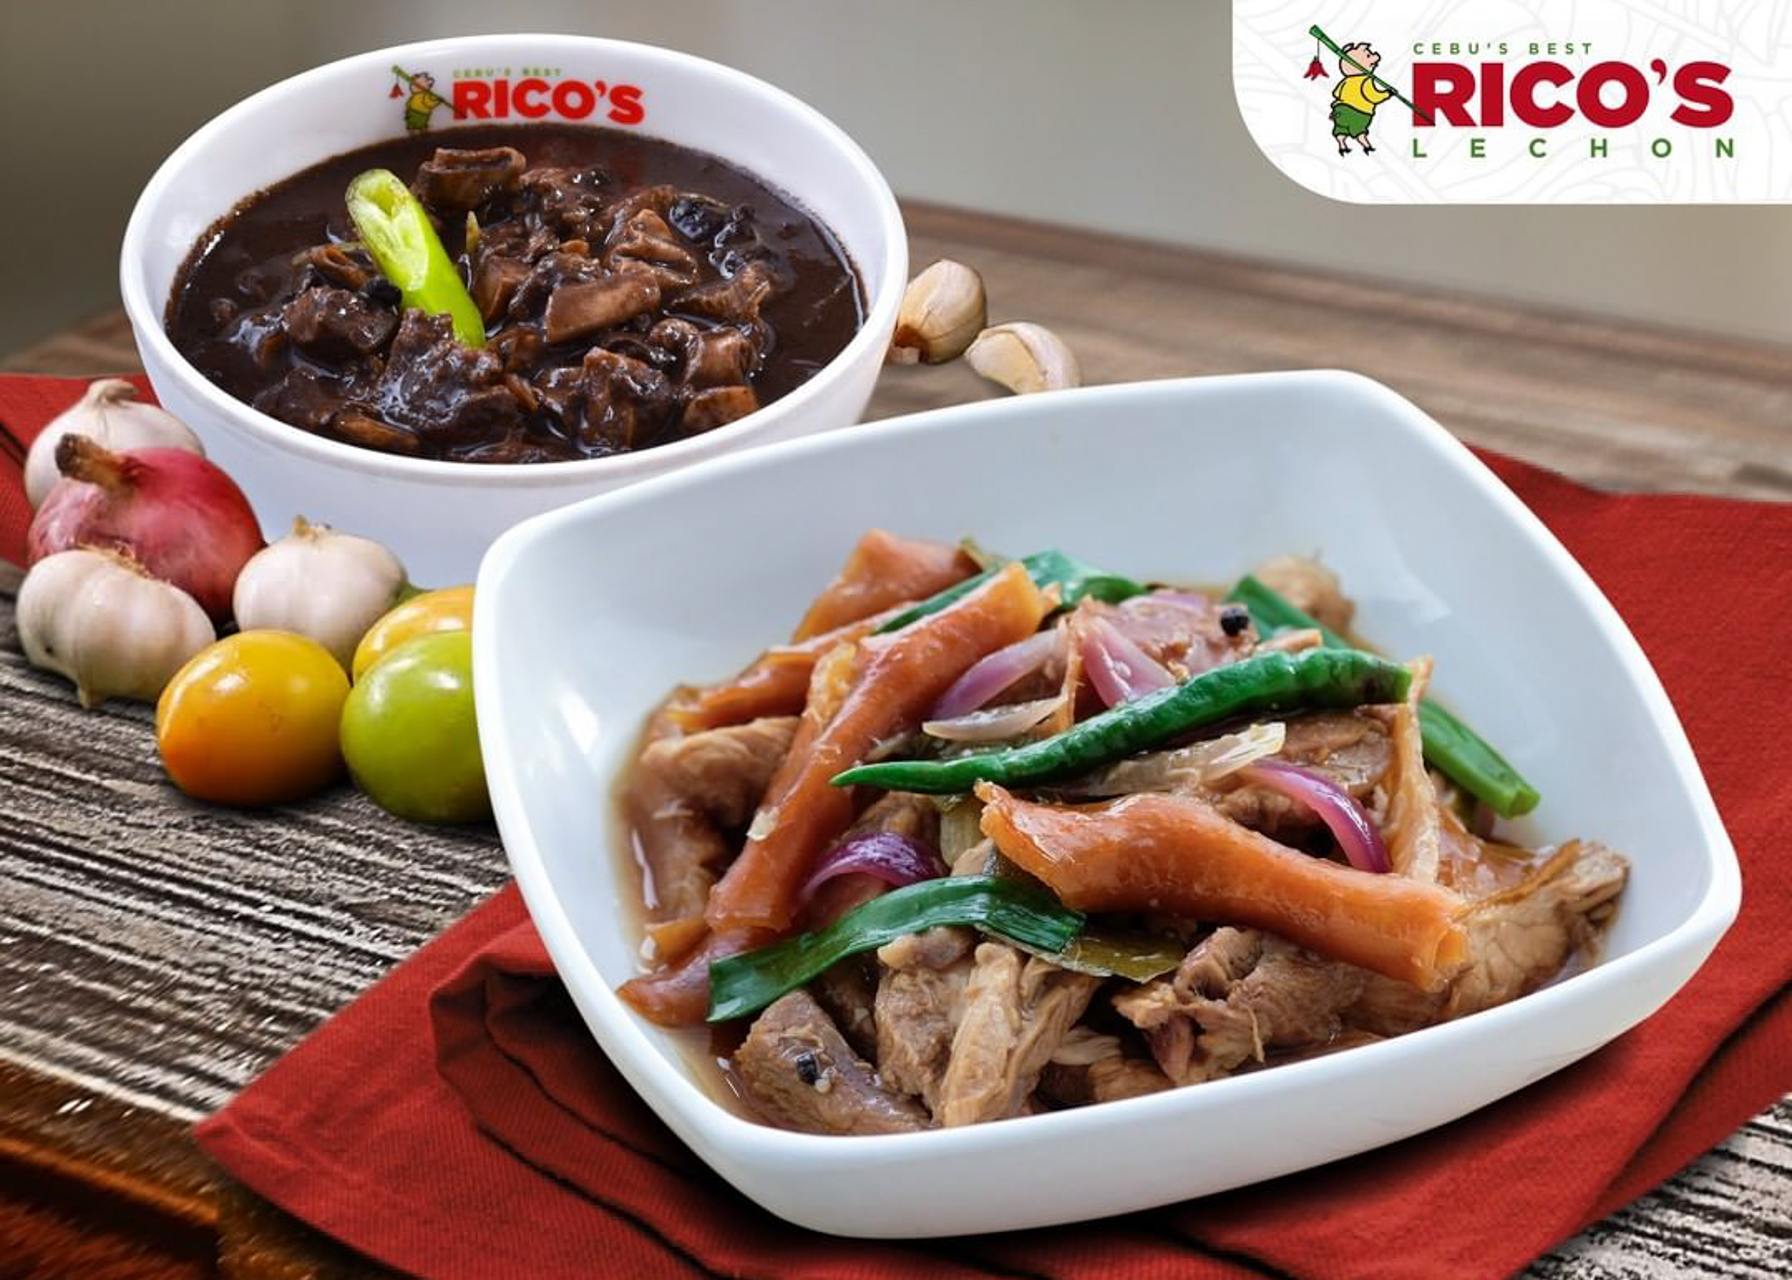 Rico's Lechon Rice Toppings Are Now Available at 7-Eleven